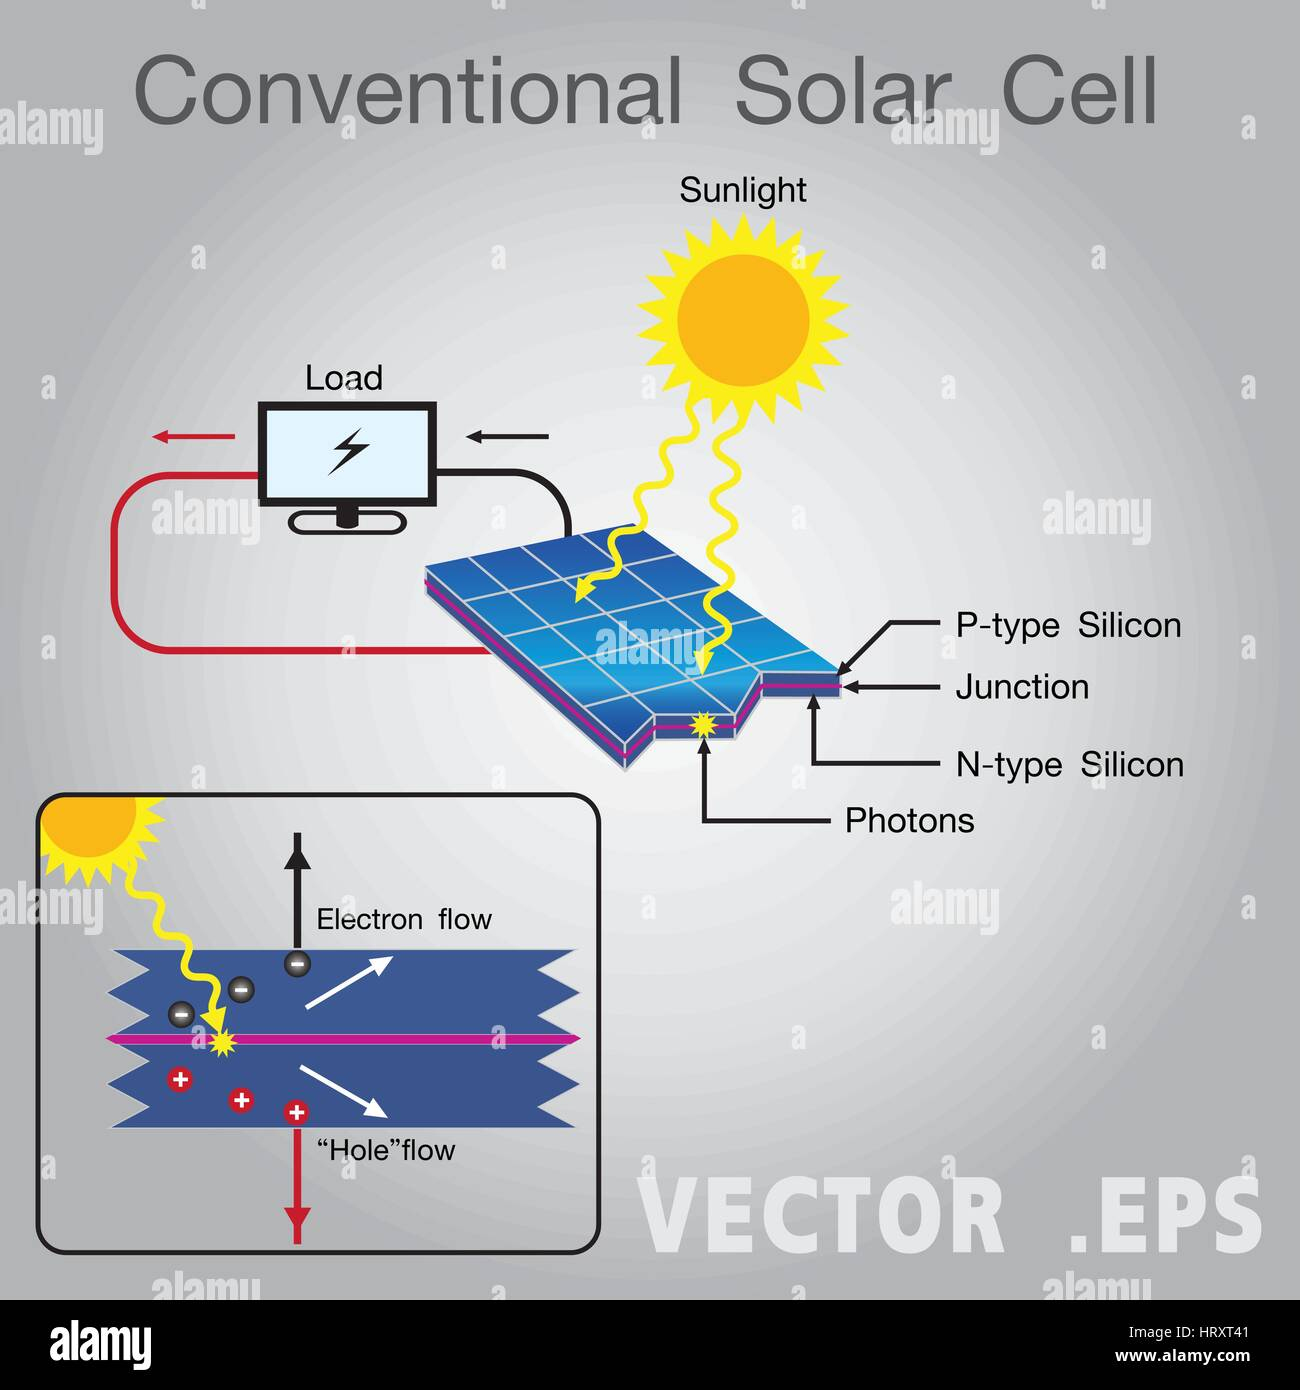 conventional solar cell diagram vector stock vector art